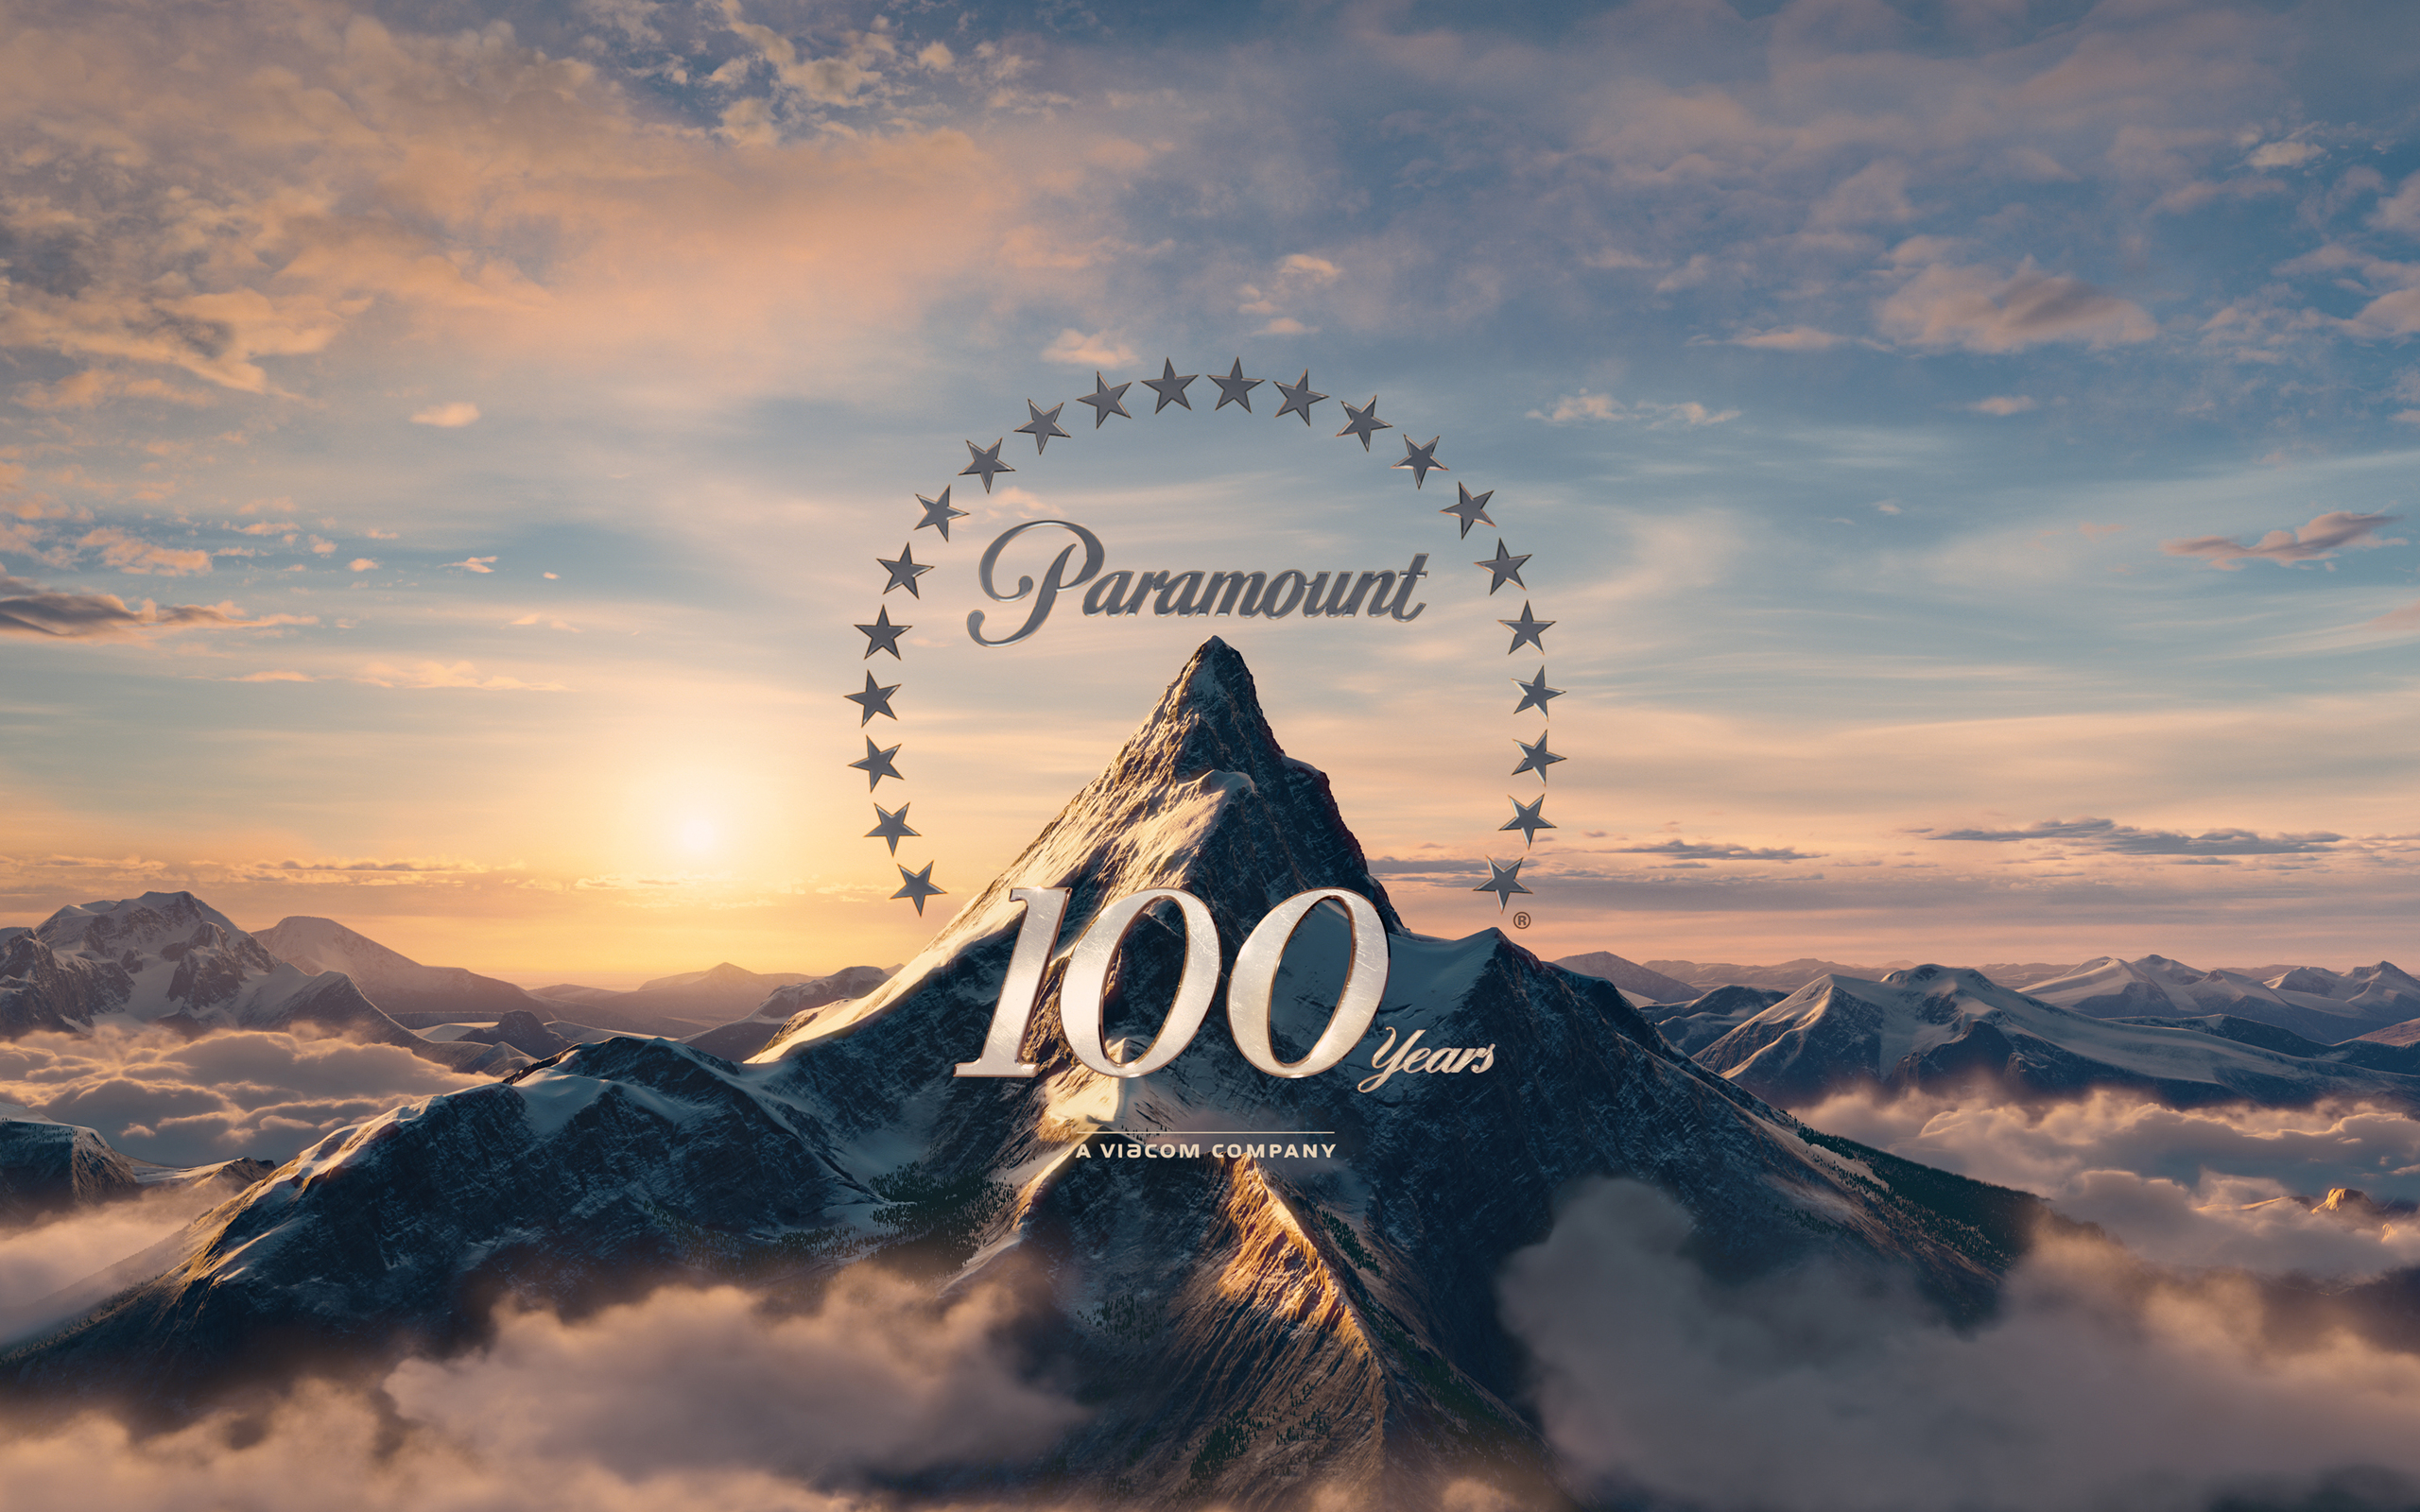 history and success of paramount pictures Paramount pictures (also known as paramount pictures corporation) is a film and television production/distribution company founded in 1912 and currently owned by media conglomerate viacom.